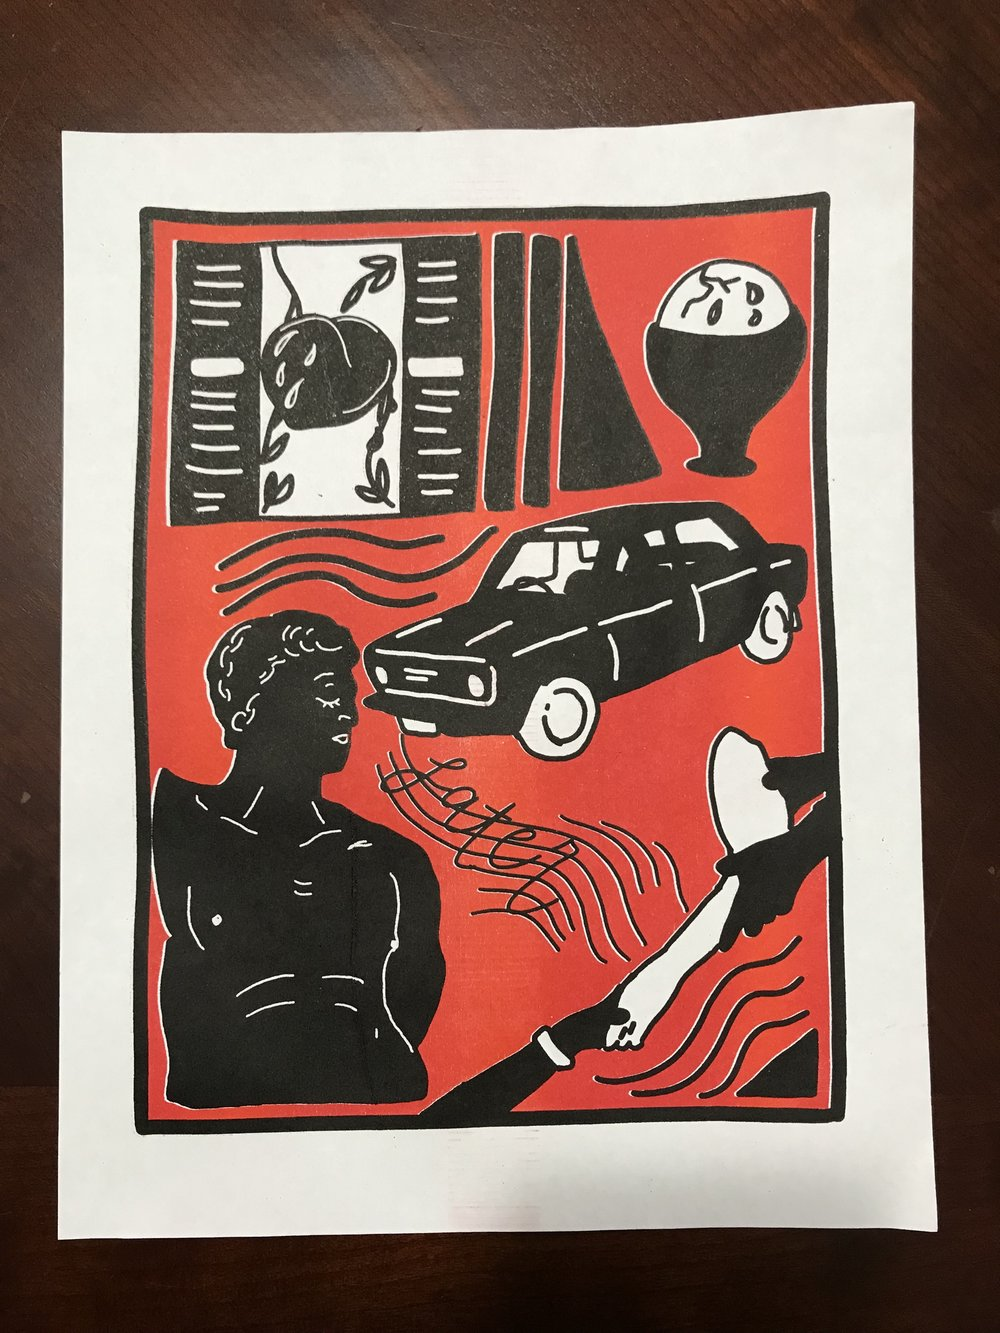 A red and black riso print by Jemimah Barba.